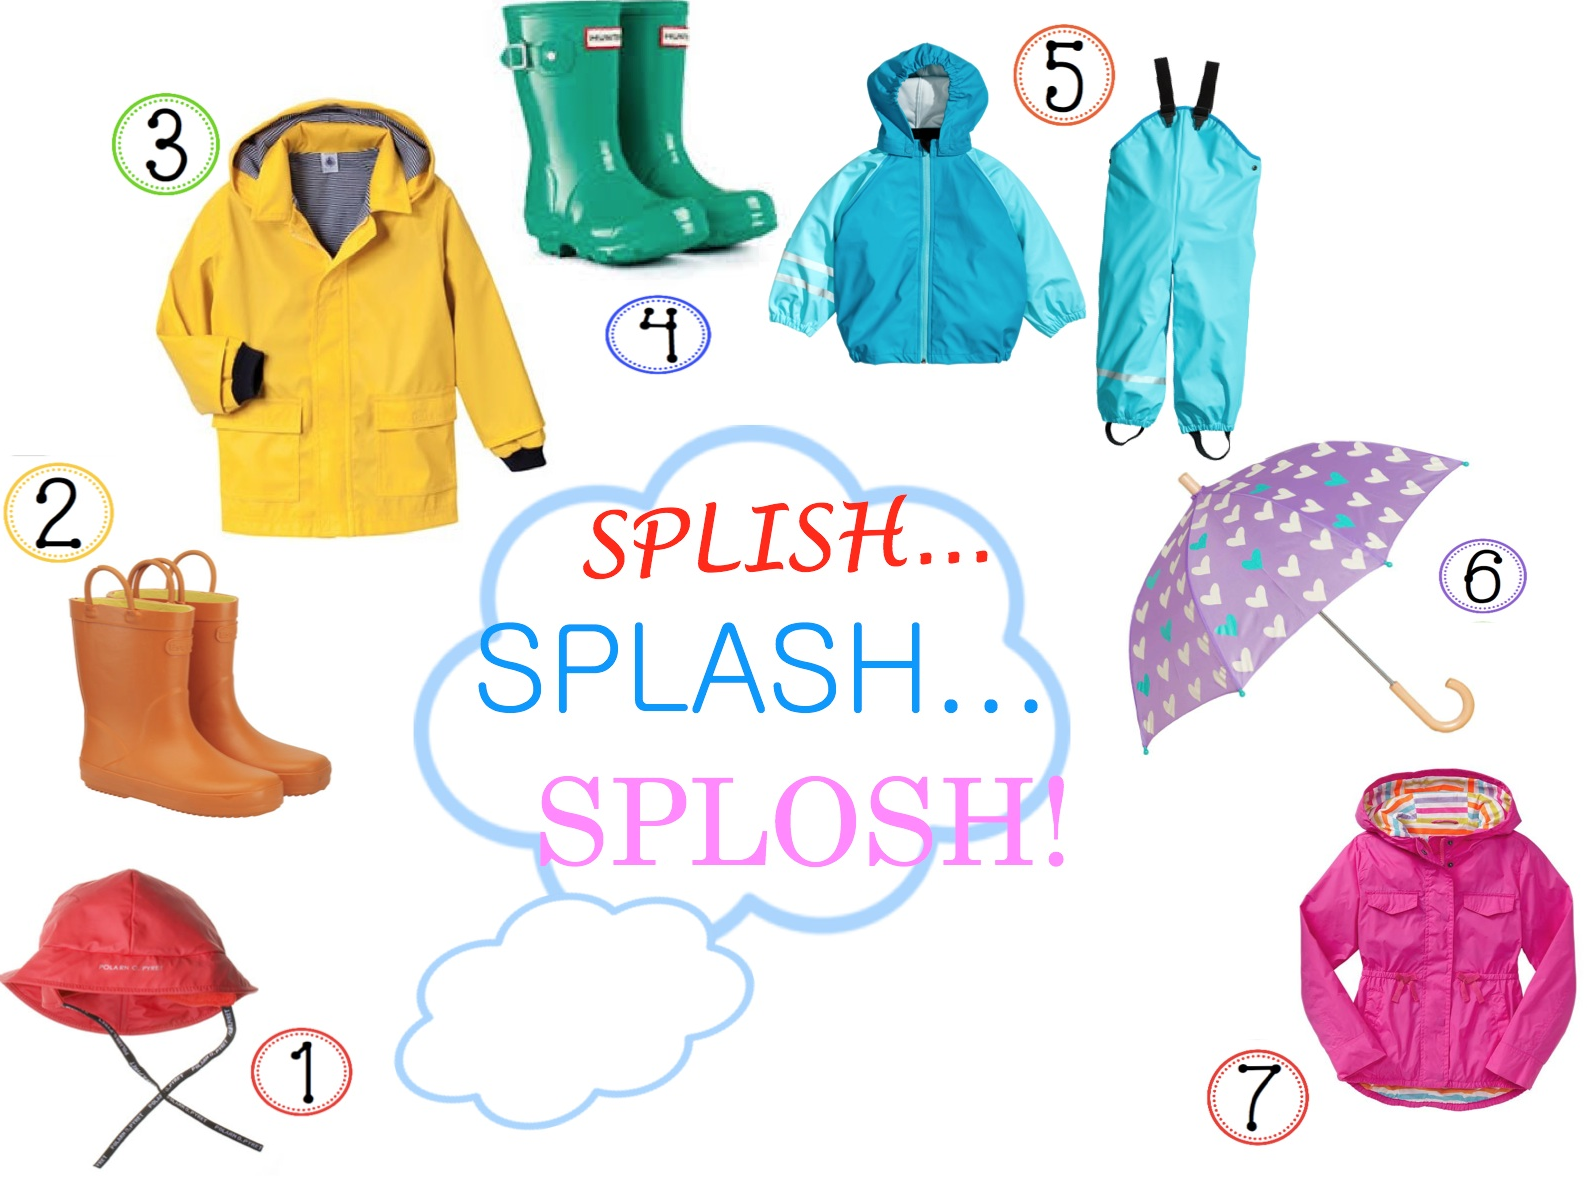 rainy season clothes essay